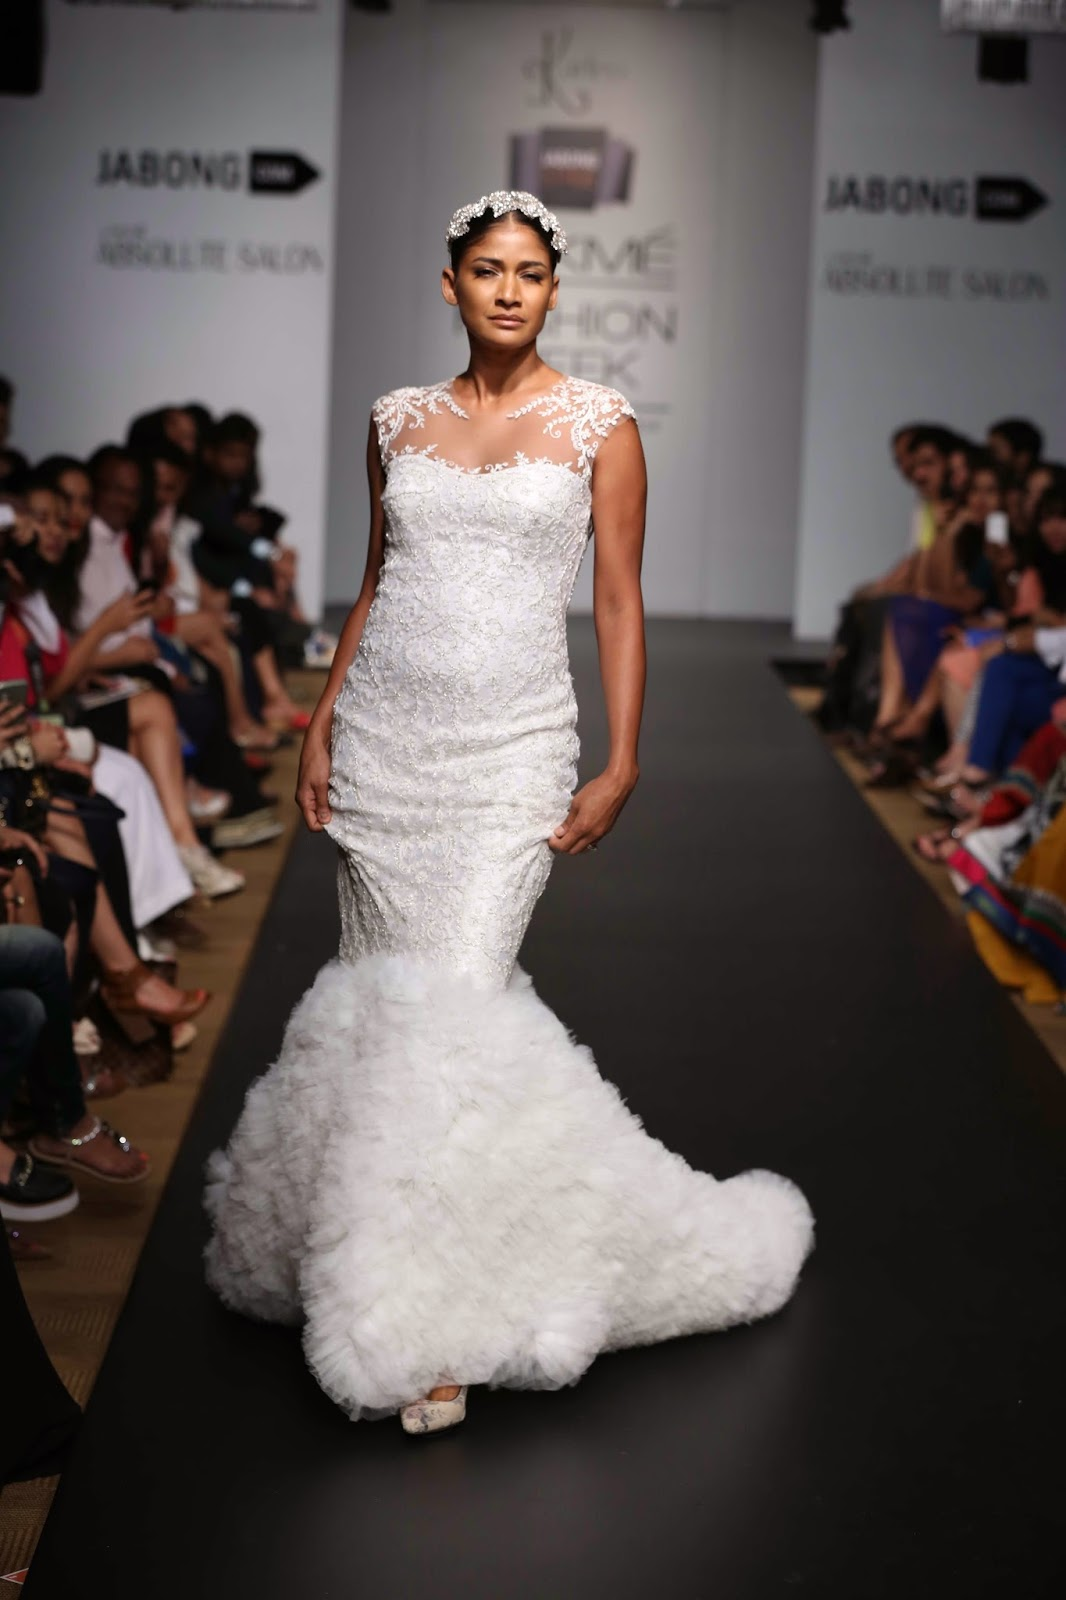 The showstopper was none other than supermodel Carol Gracias who stunned all in a crystal encrusted white gown with opulent ruffles at the bottom. Pretty, dramatic and daring 'KARLEO' by Karan Berry and Leon Vaz had everything for any diva who likes to stand out.